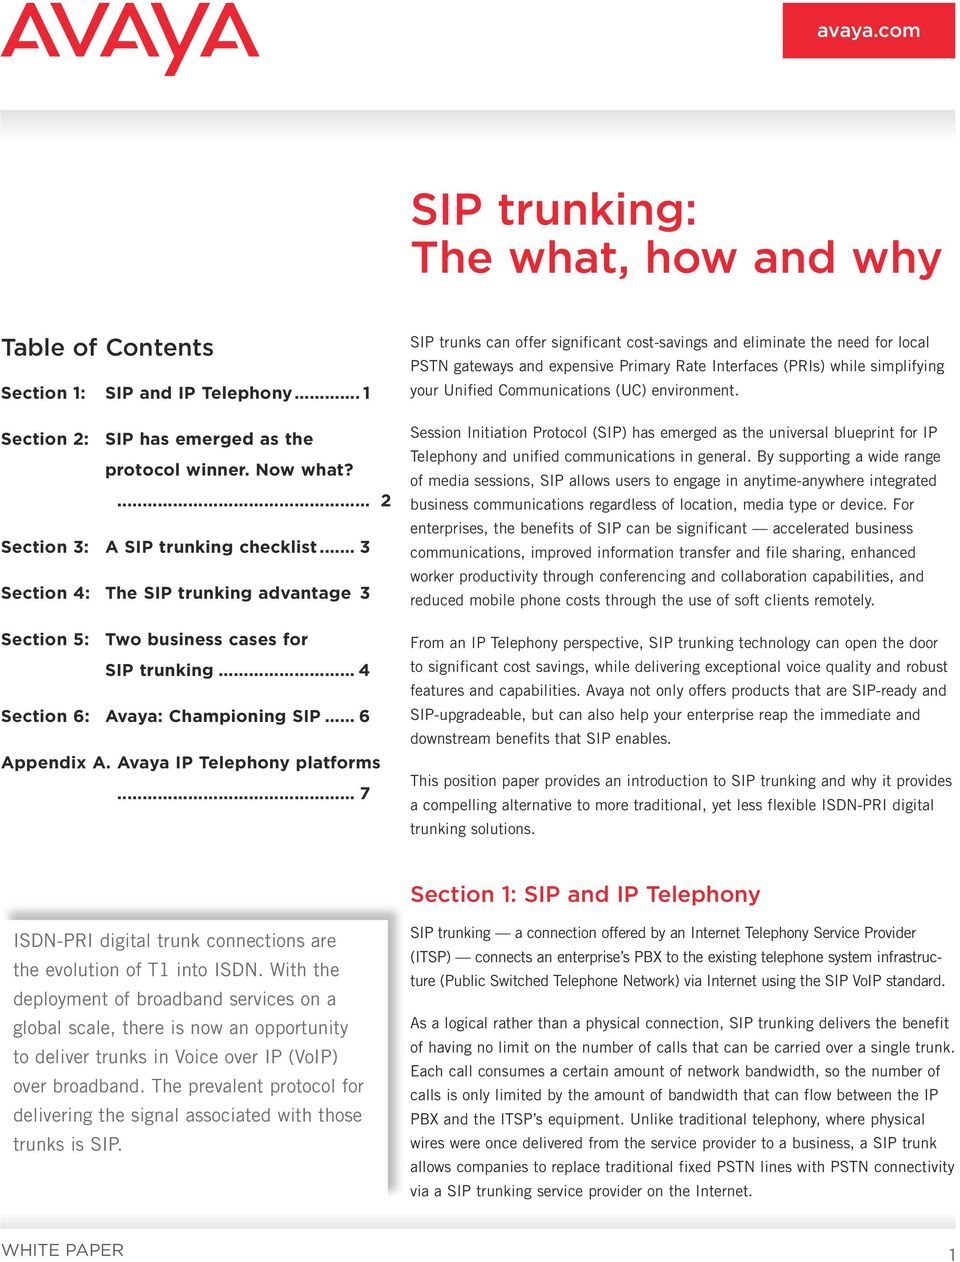 .. 7 SIP trunks can offer significant cost-savings and eliminate the need for local PSTN gateways and expensive Primary Rate Interfaces (PRIs) while simplifying your Unified Communications (UC)